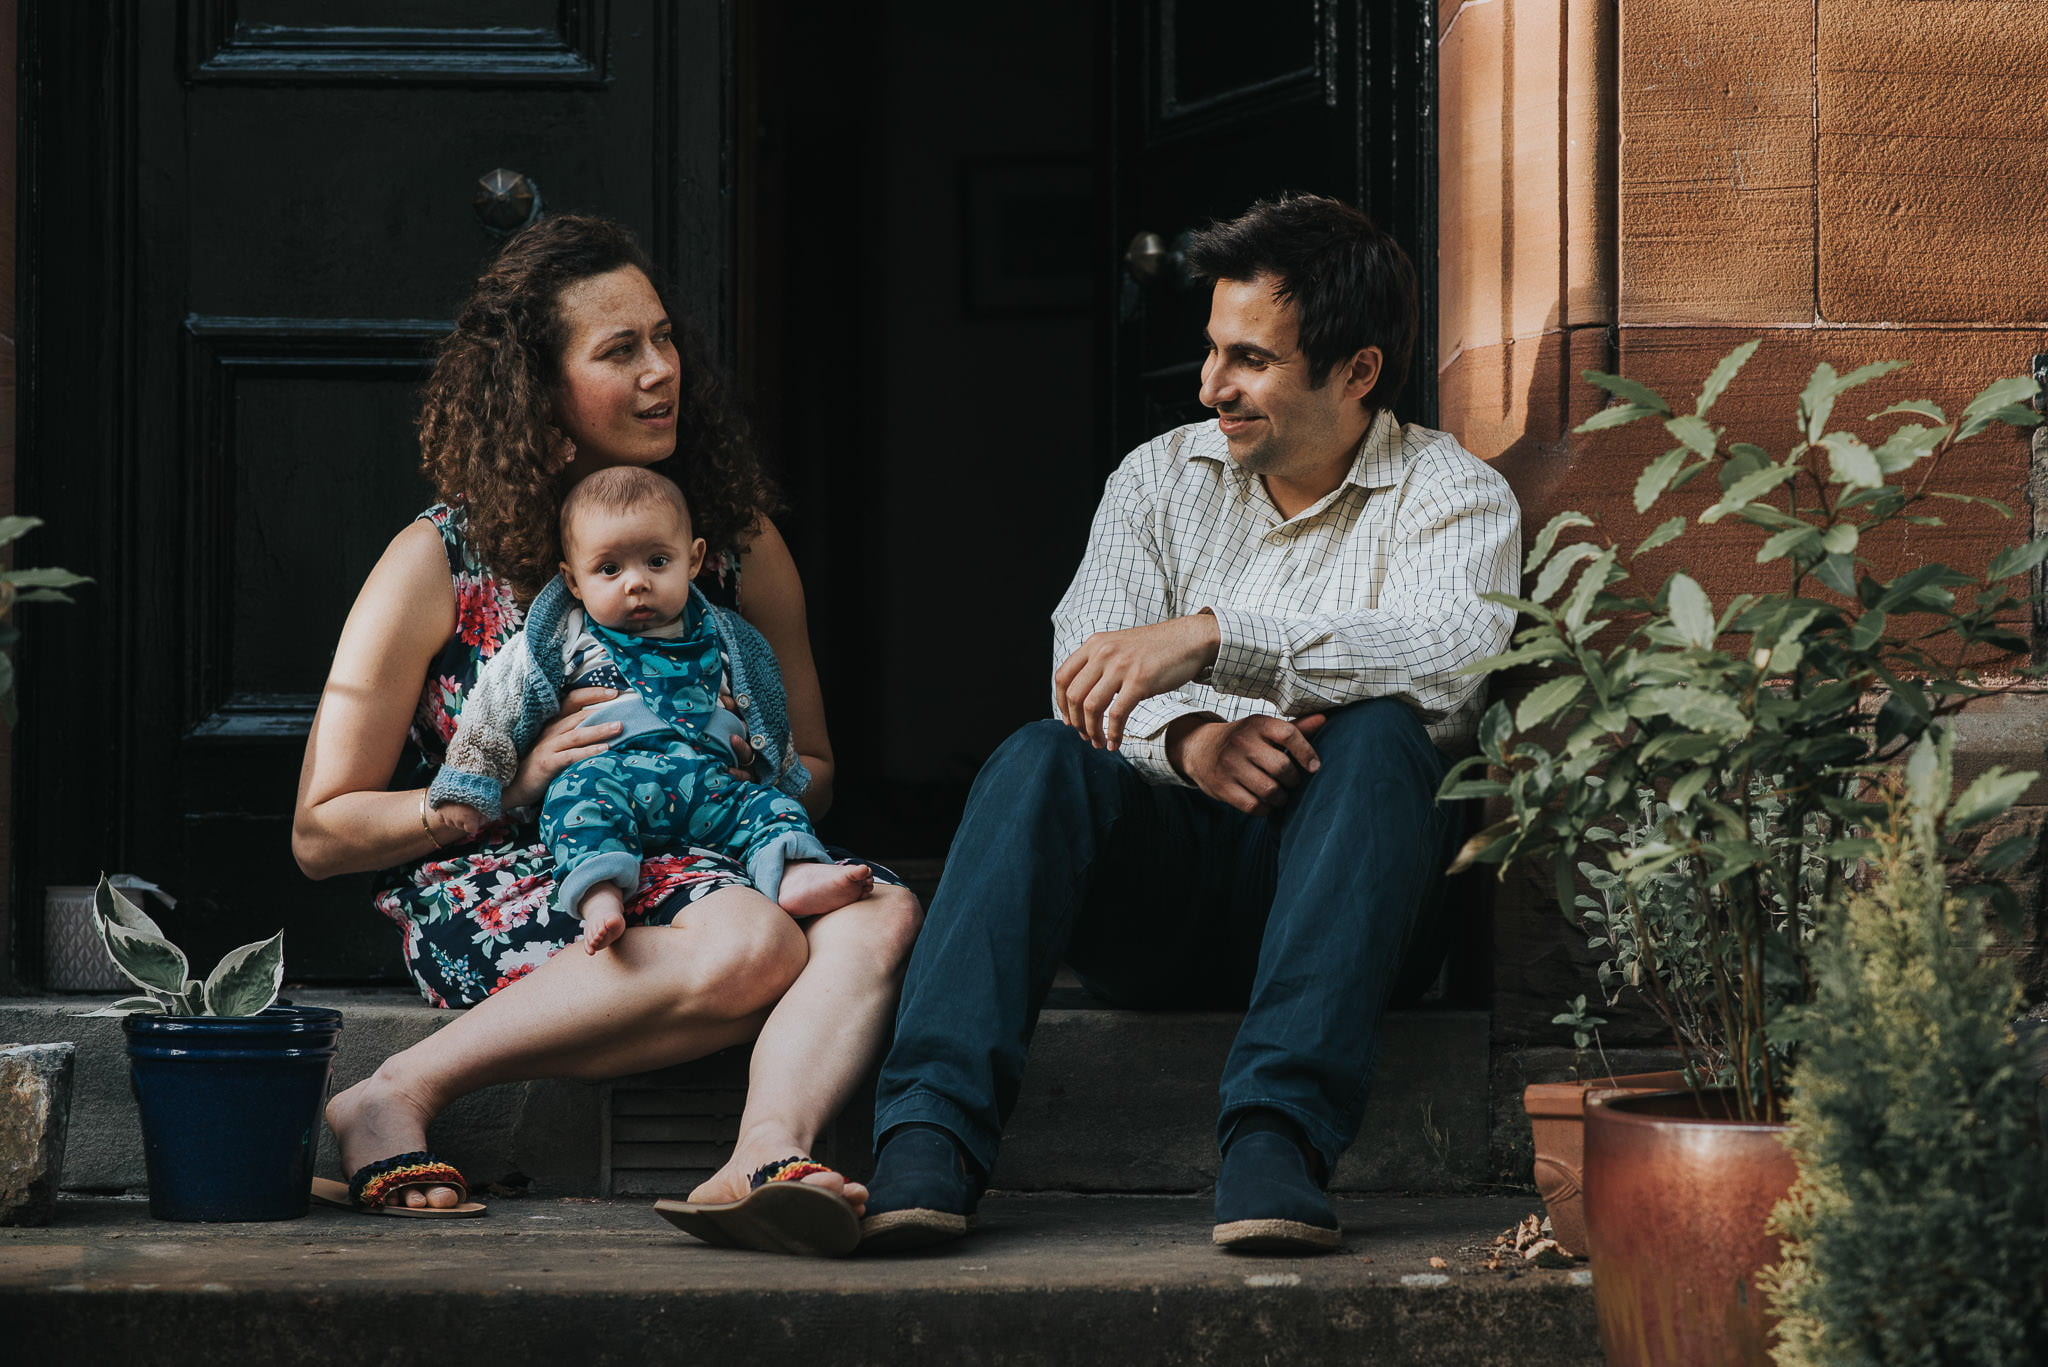 Doorstep Family Portrait Shoot